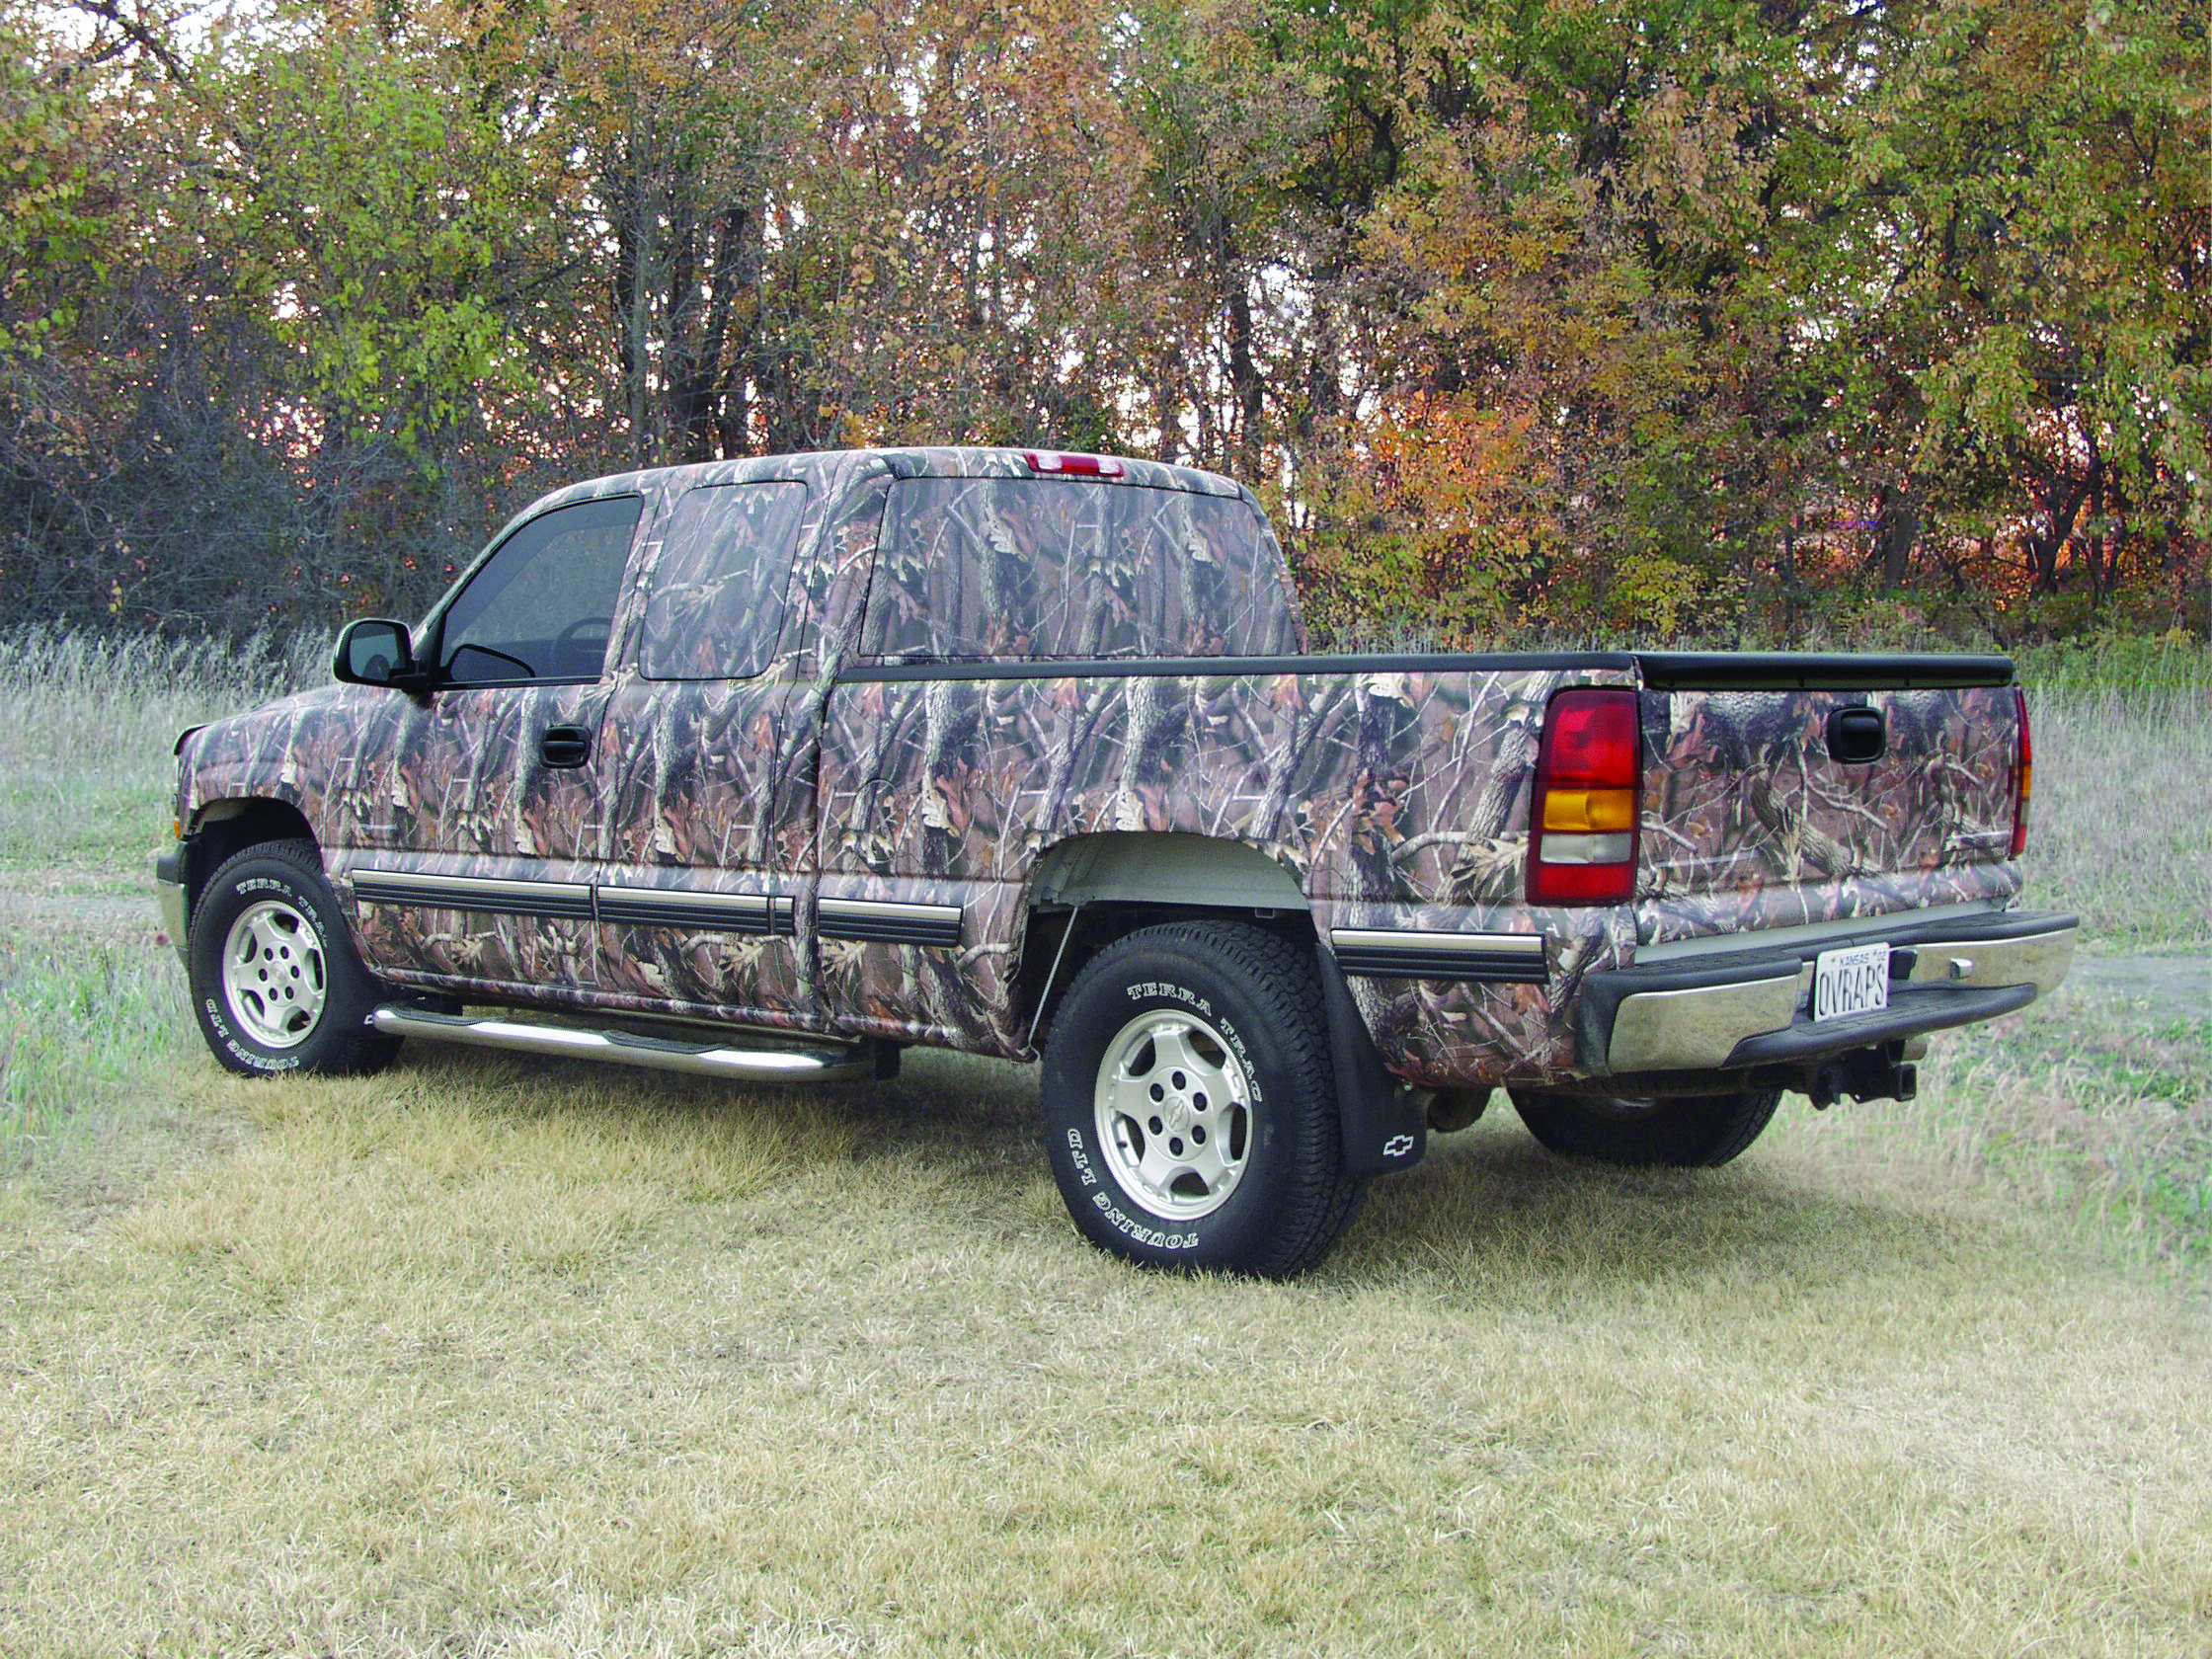 Camoflauge Chevy Are You Kidding 3 Hunting Truck Trucks For